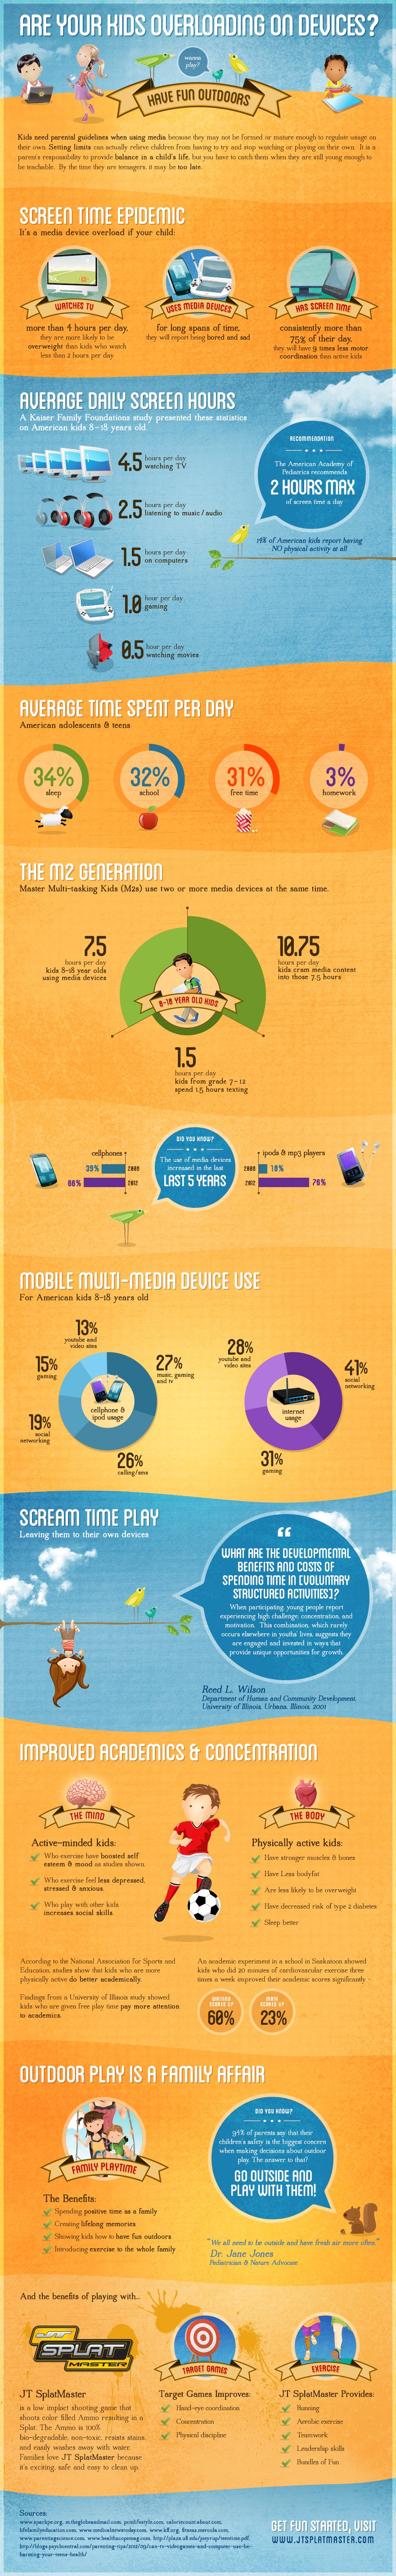 Are your kids overloading on devices